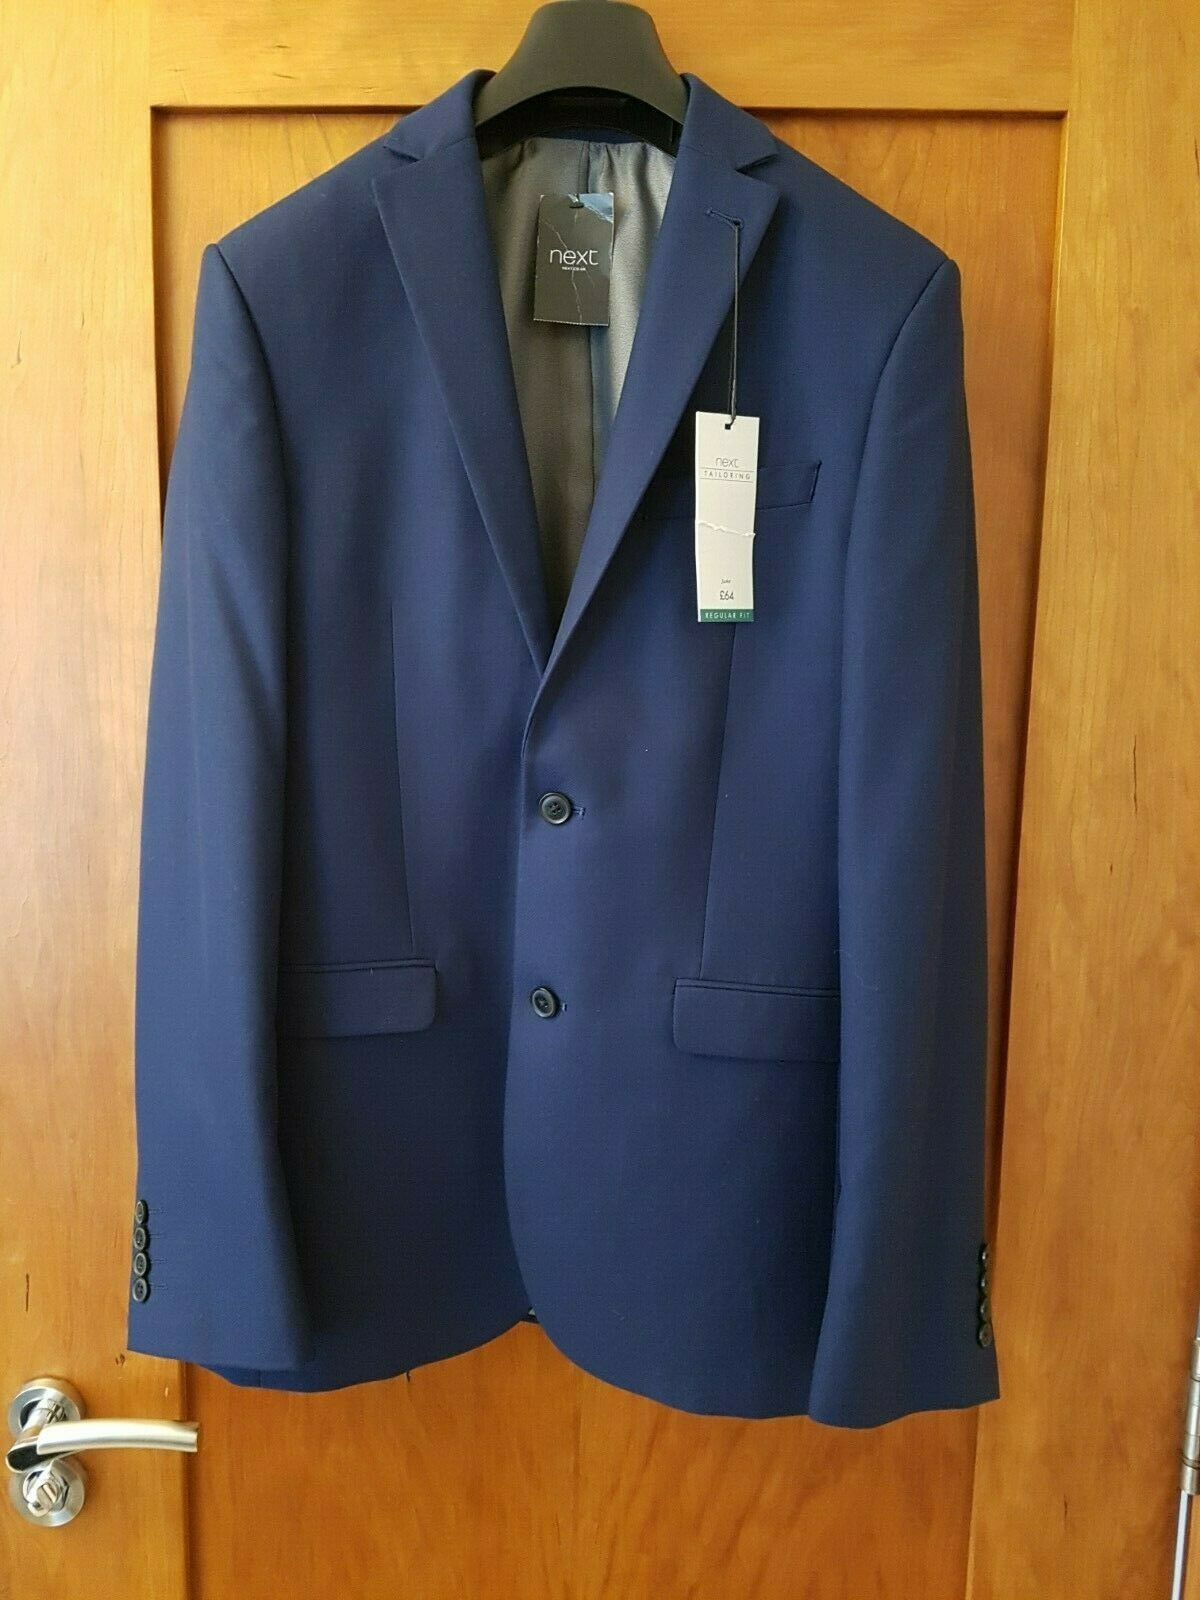 BNWT Next Tailoring suit jacket 36L and matching trousers 32R, blue,